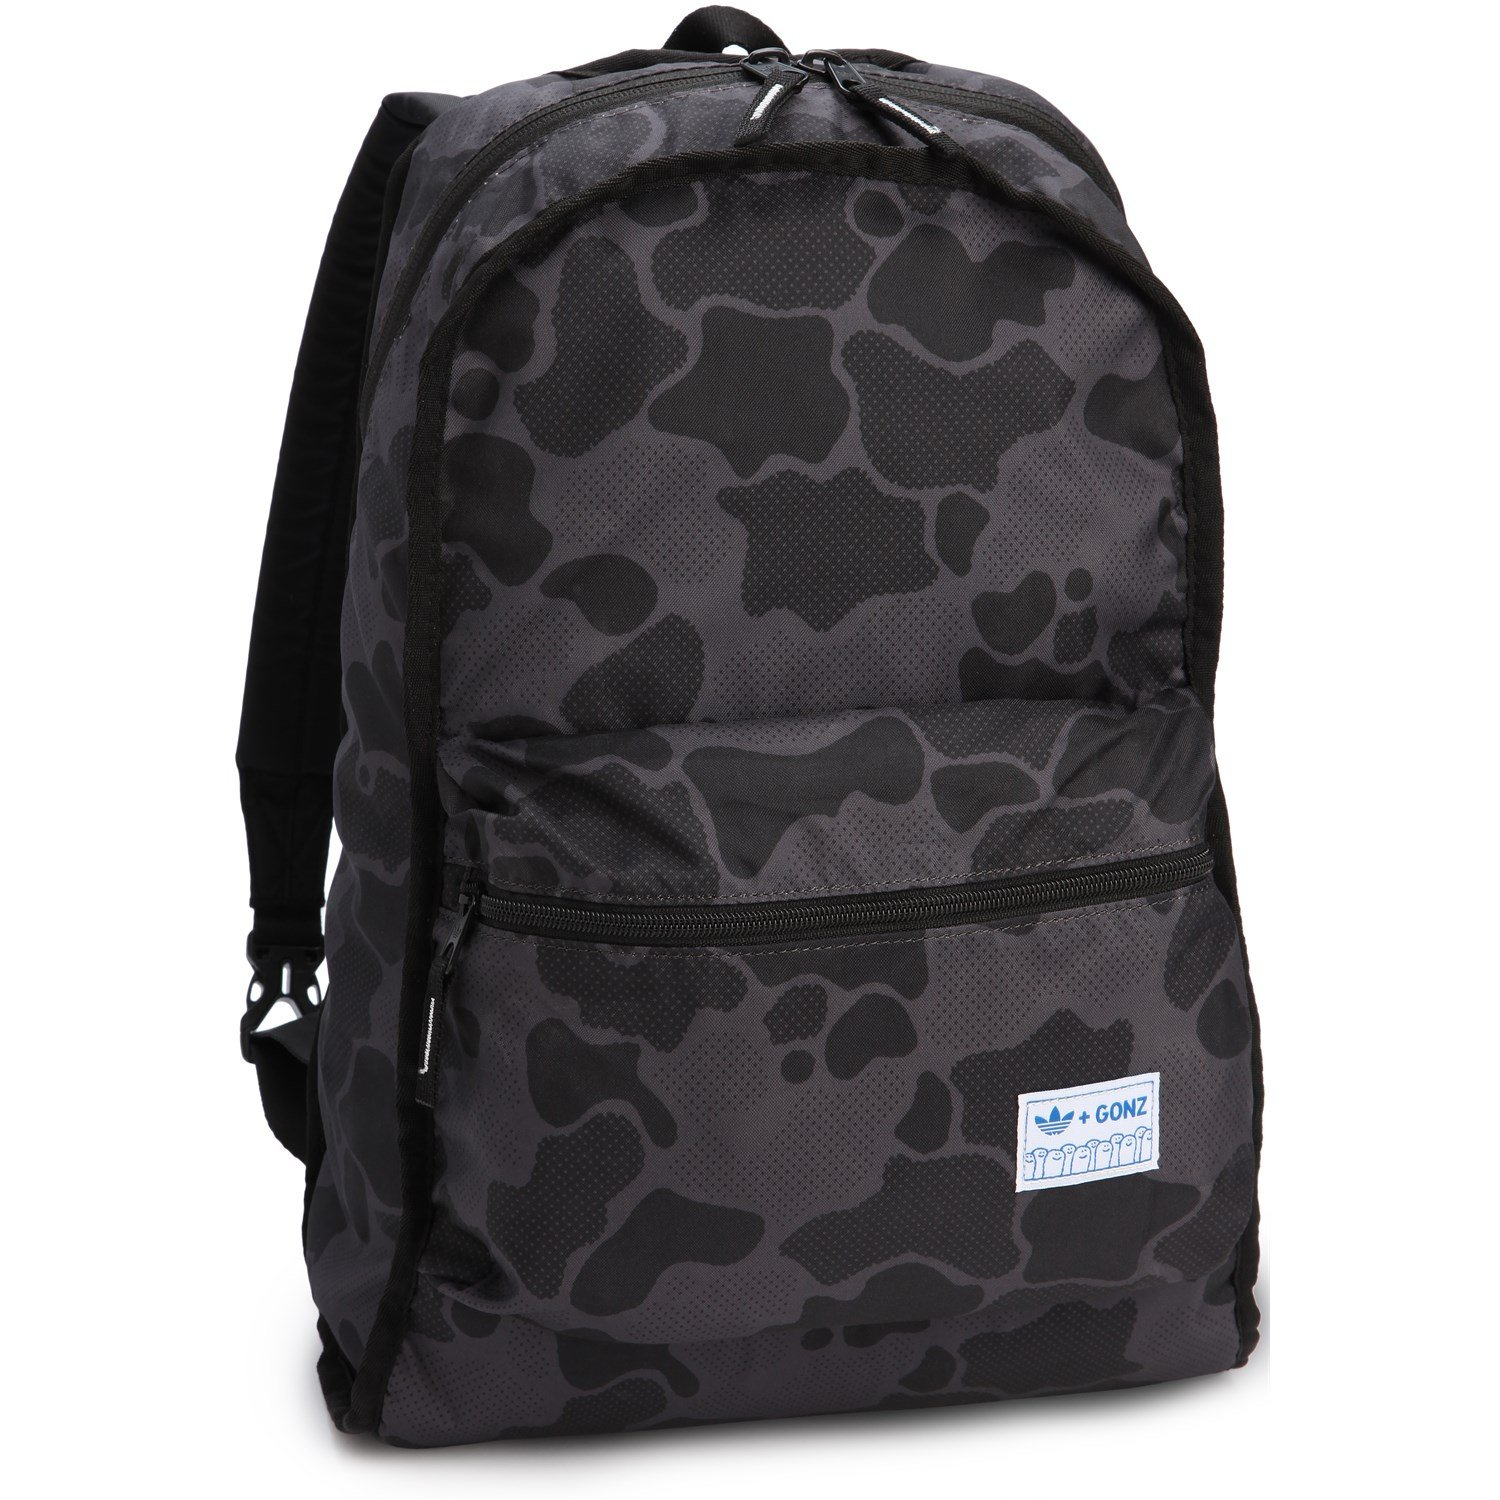 5c62e41572 adidas Originals Reversible Backpack Black Gonz Camo